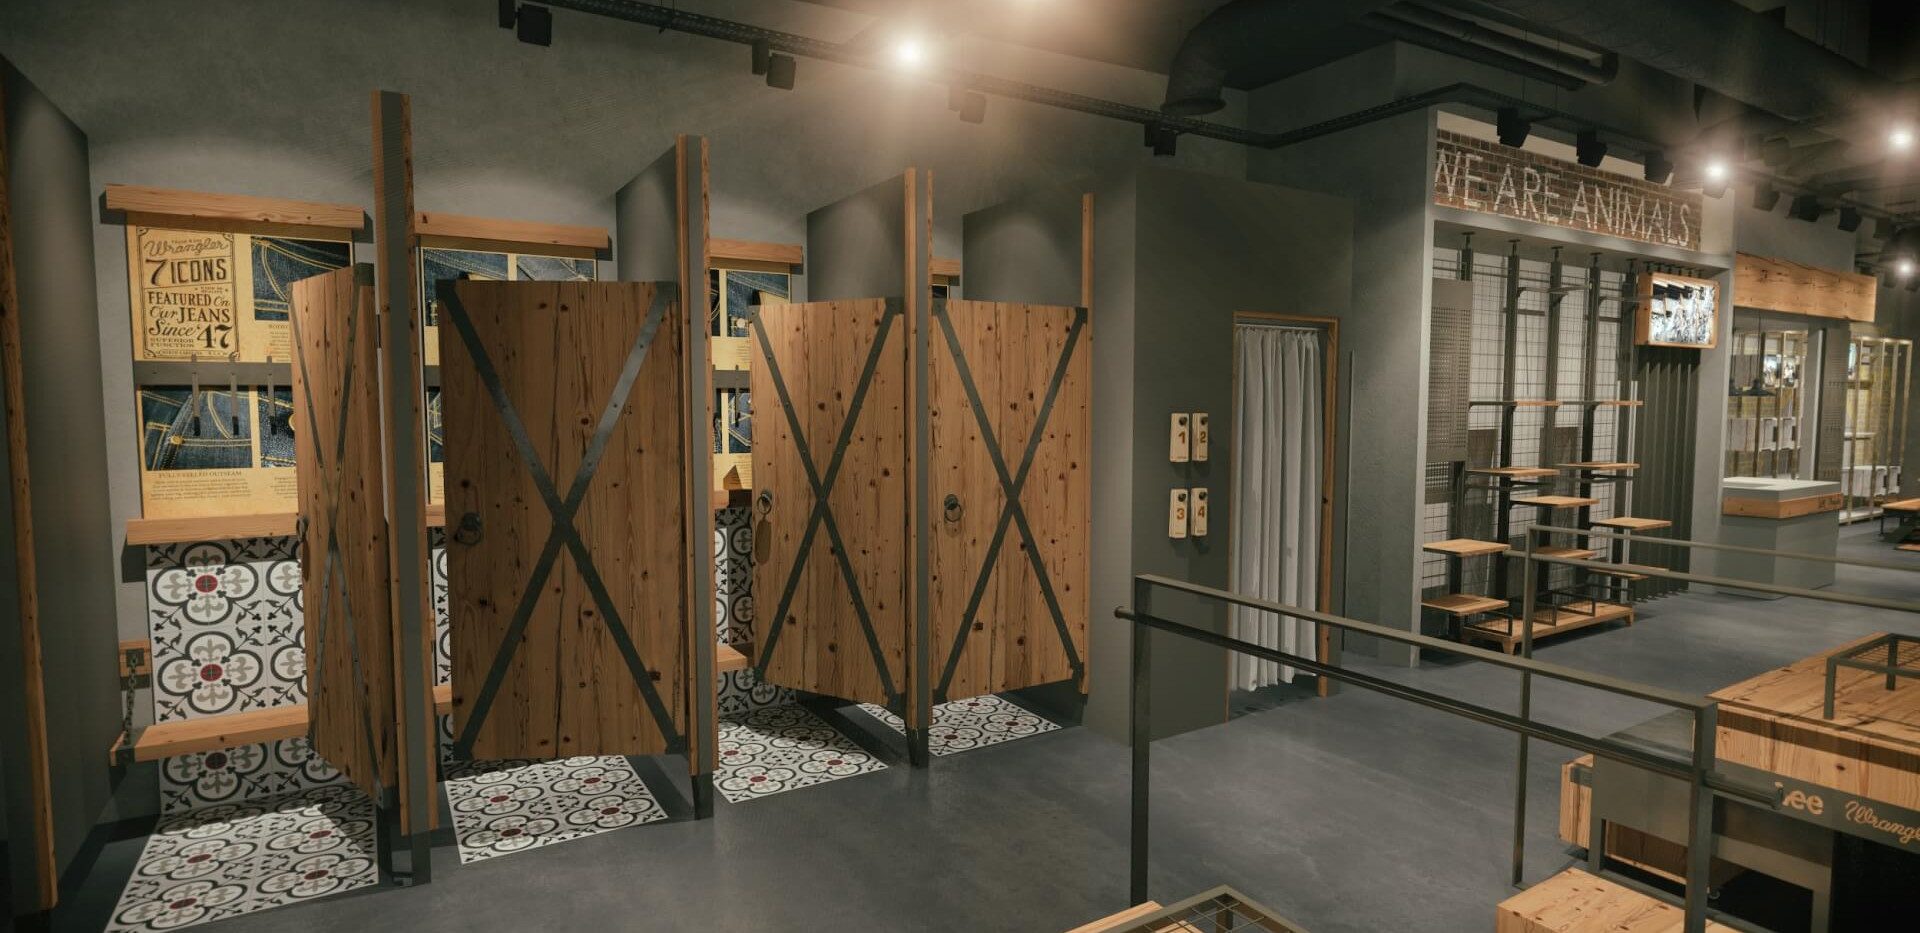 Lee Wrangler - Denim Store Shop Design-6